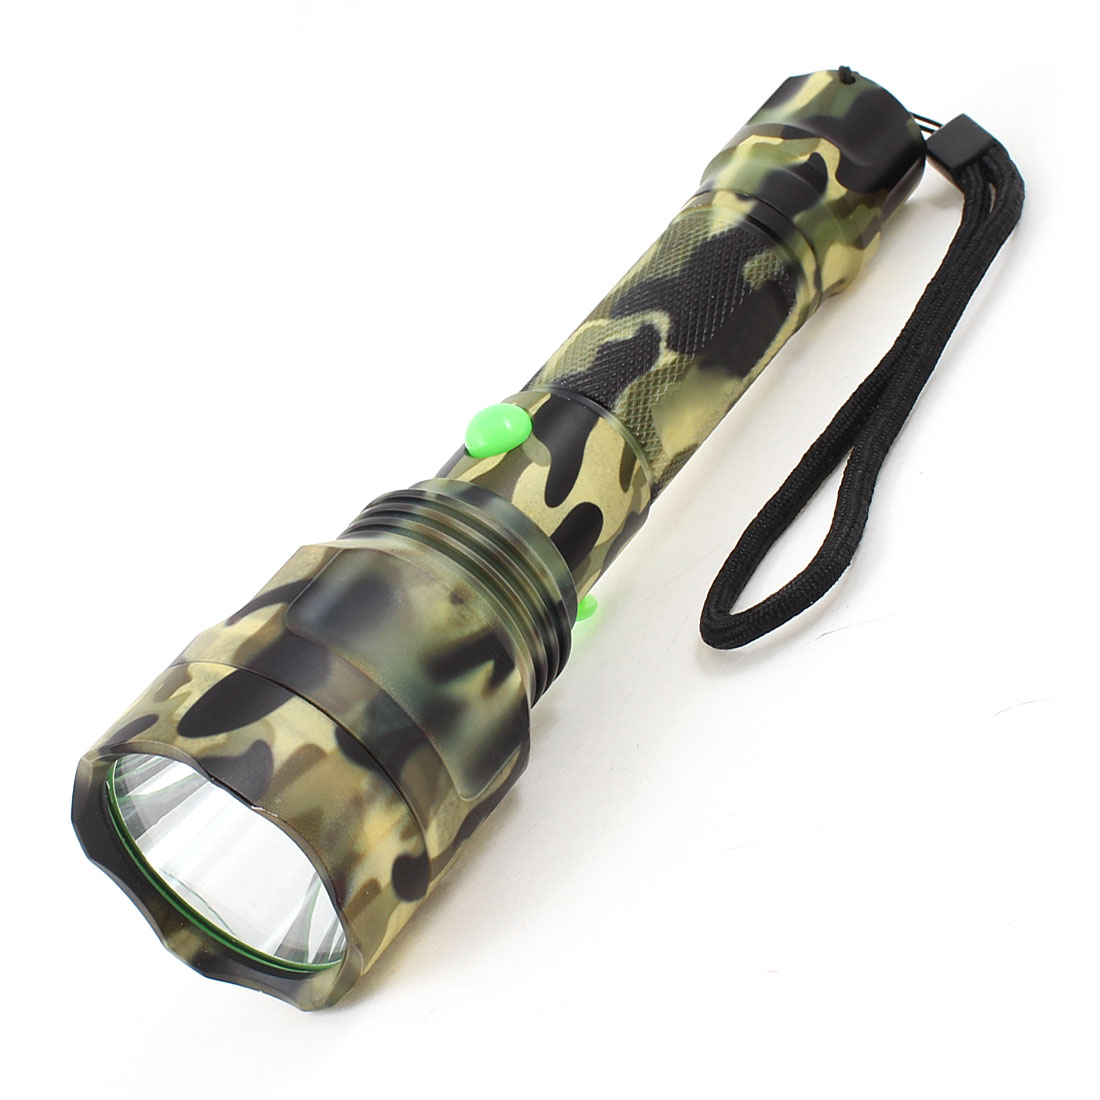 Black Green Housing 850LM 10W 3 Modes White LED Light Rechargeable Flashlight